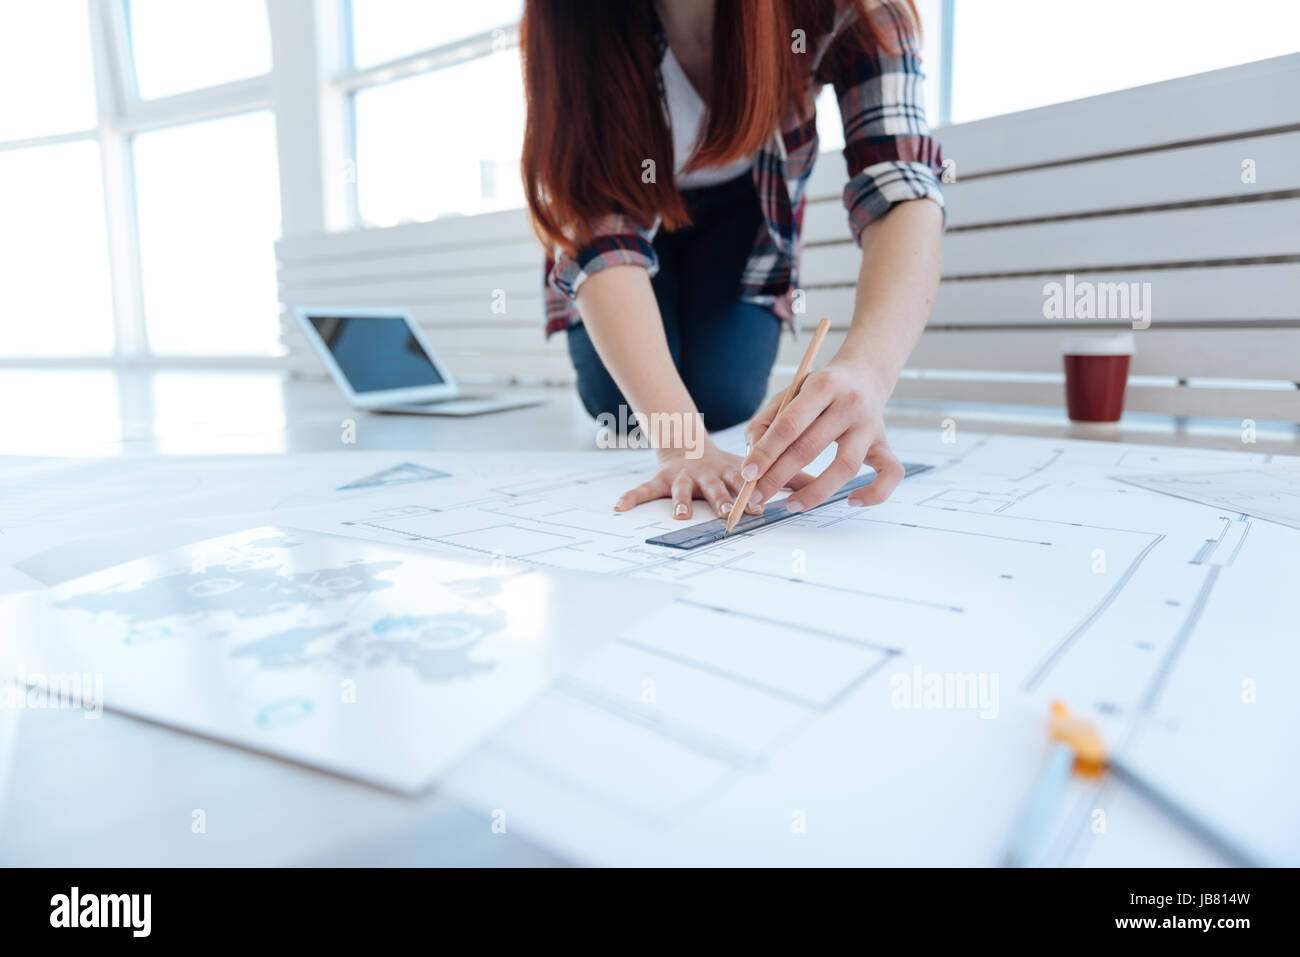 Engineering draft being drawn by a woman - Stock Image